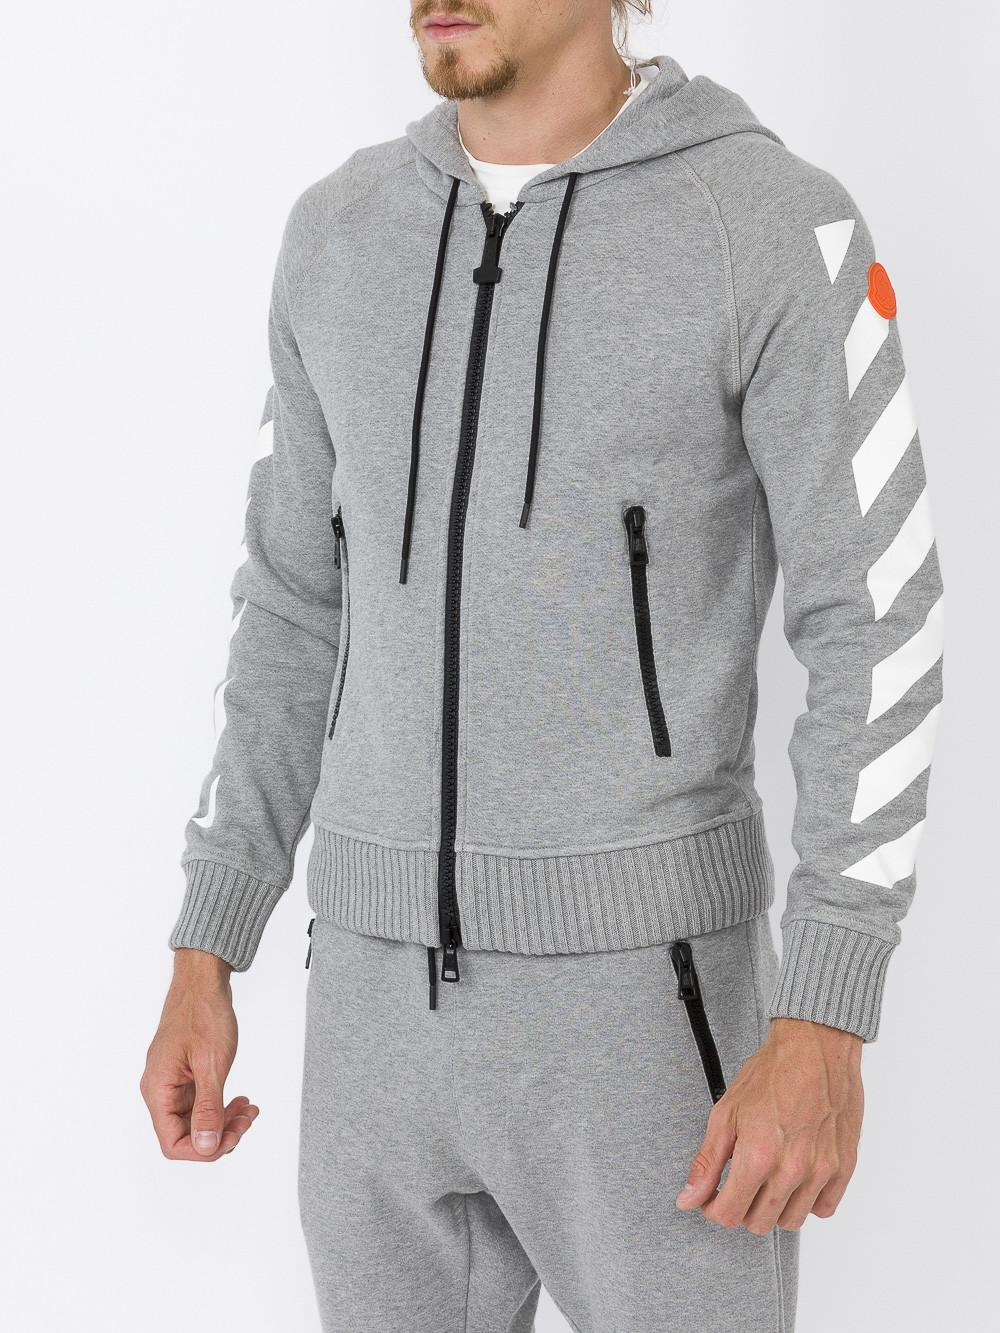 moncler off white hoodie